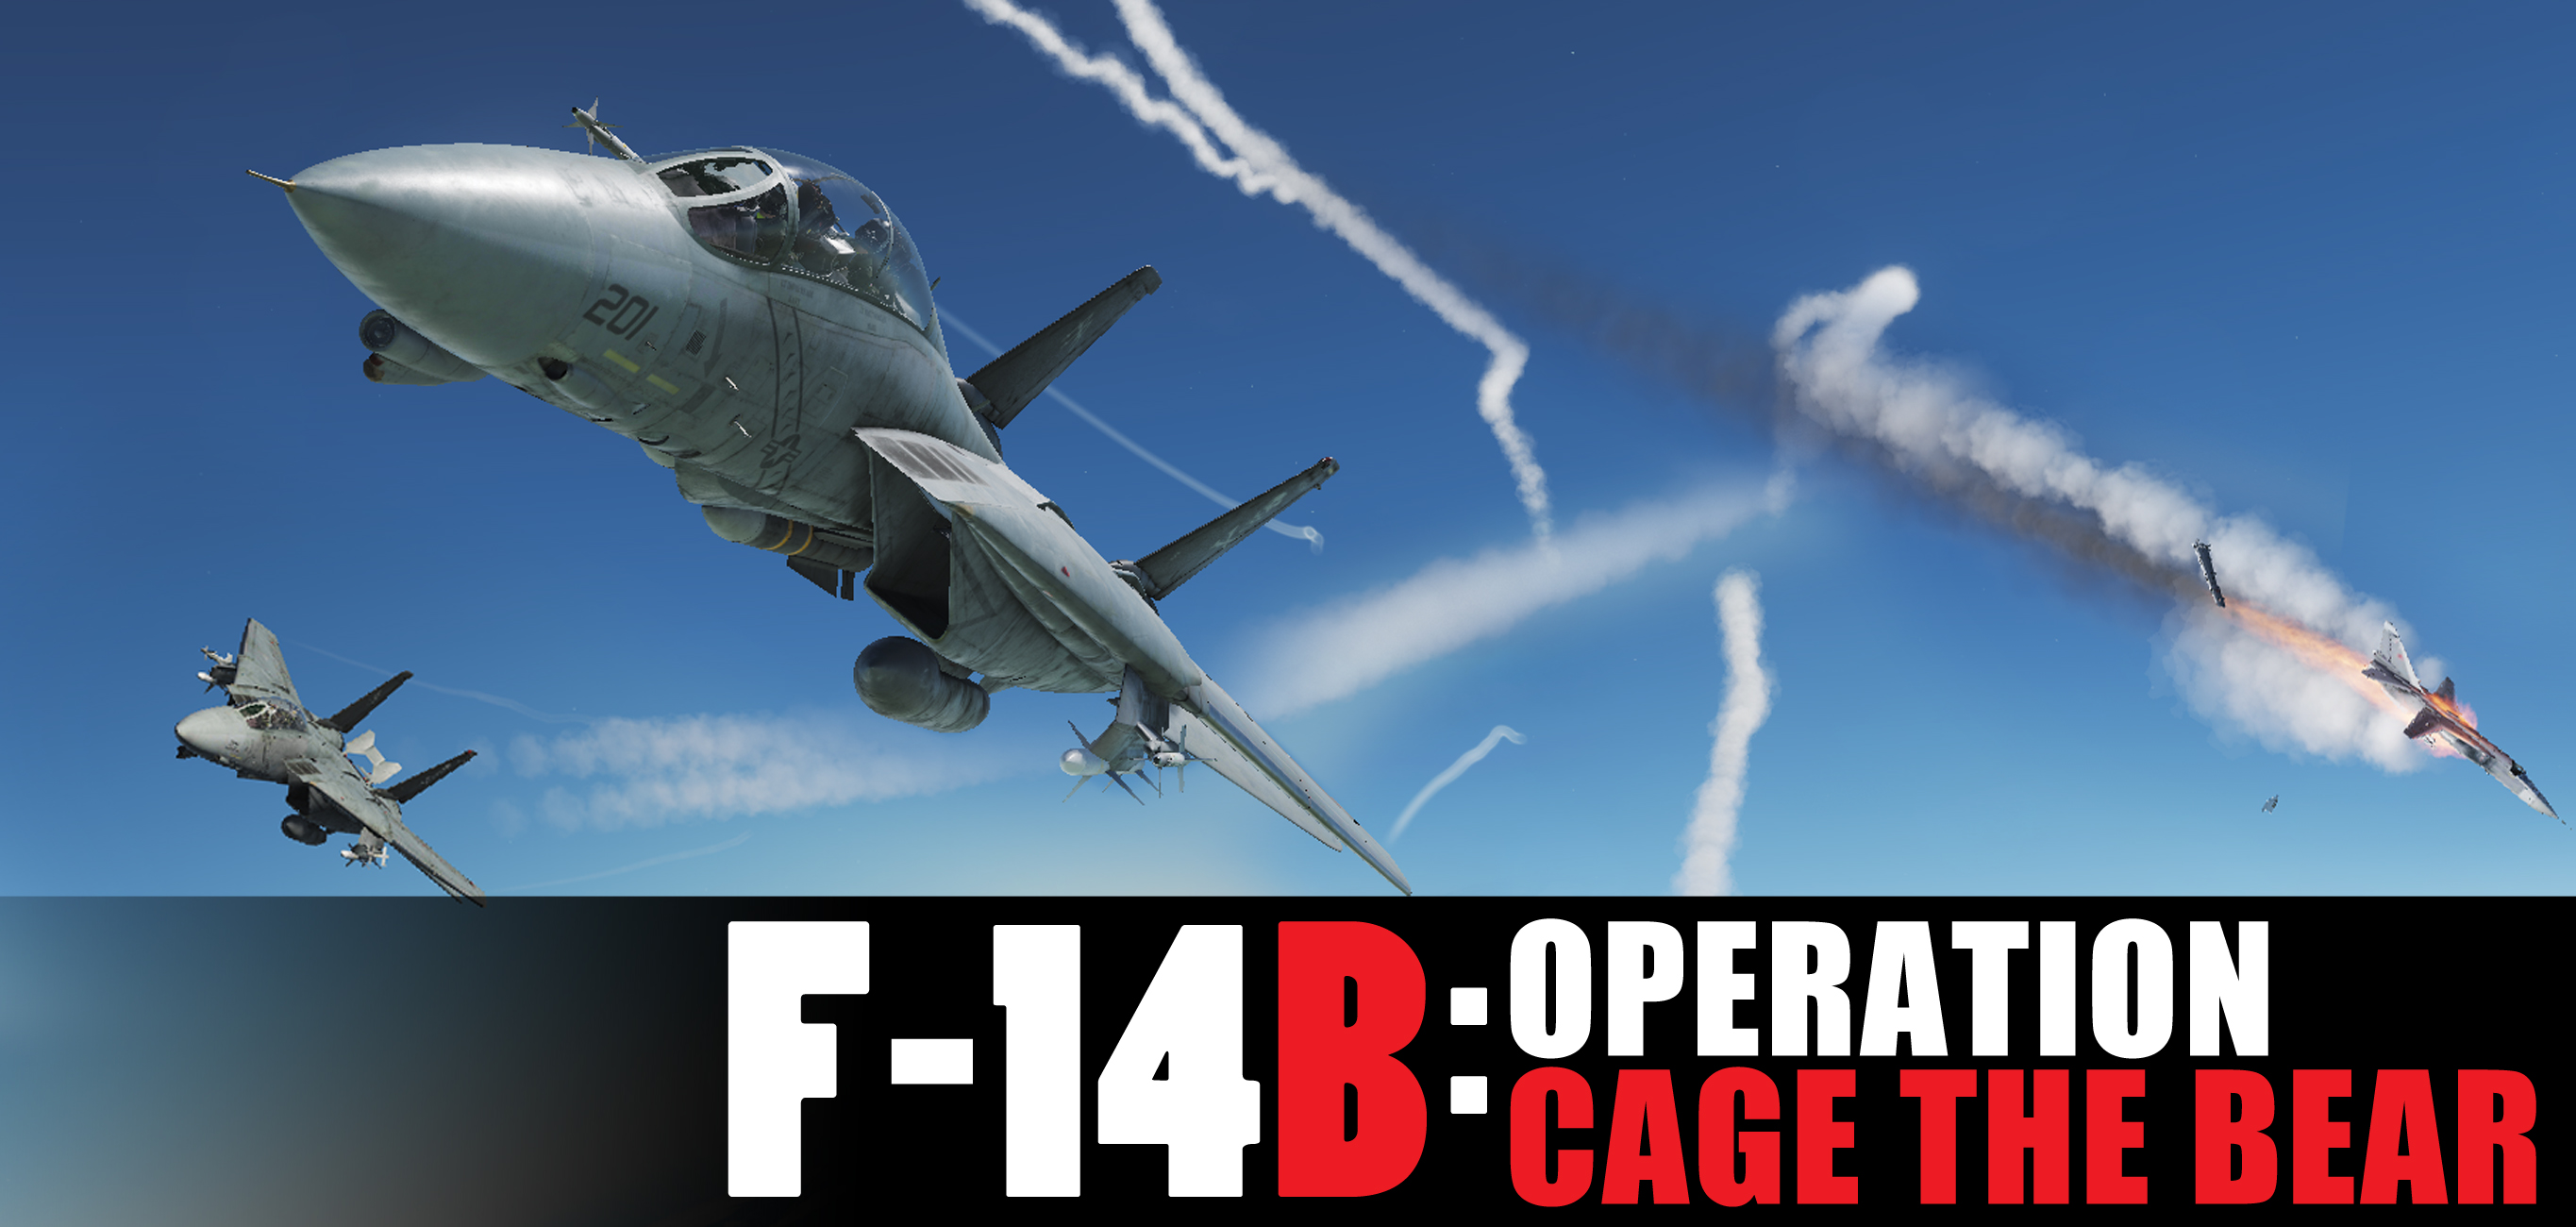 OPERATION : CAGE THE BEAR (F-14B CAMPAIGN)